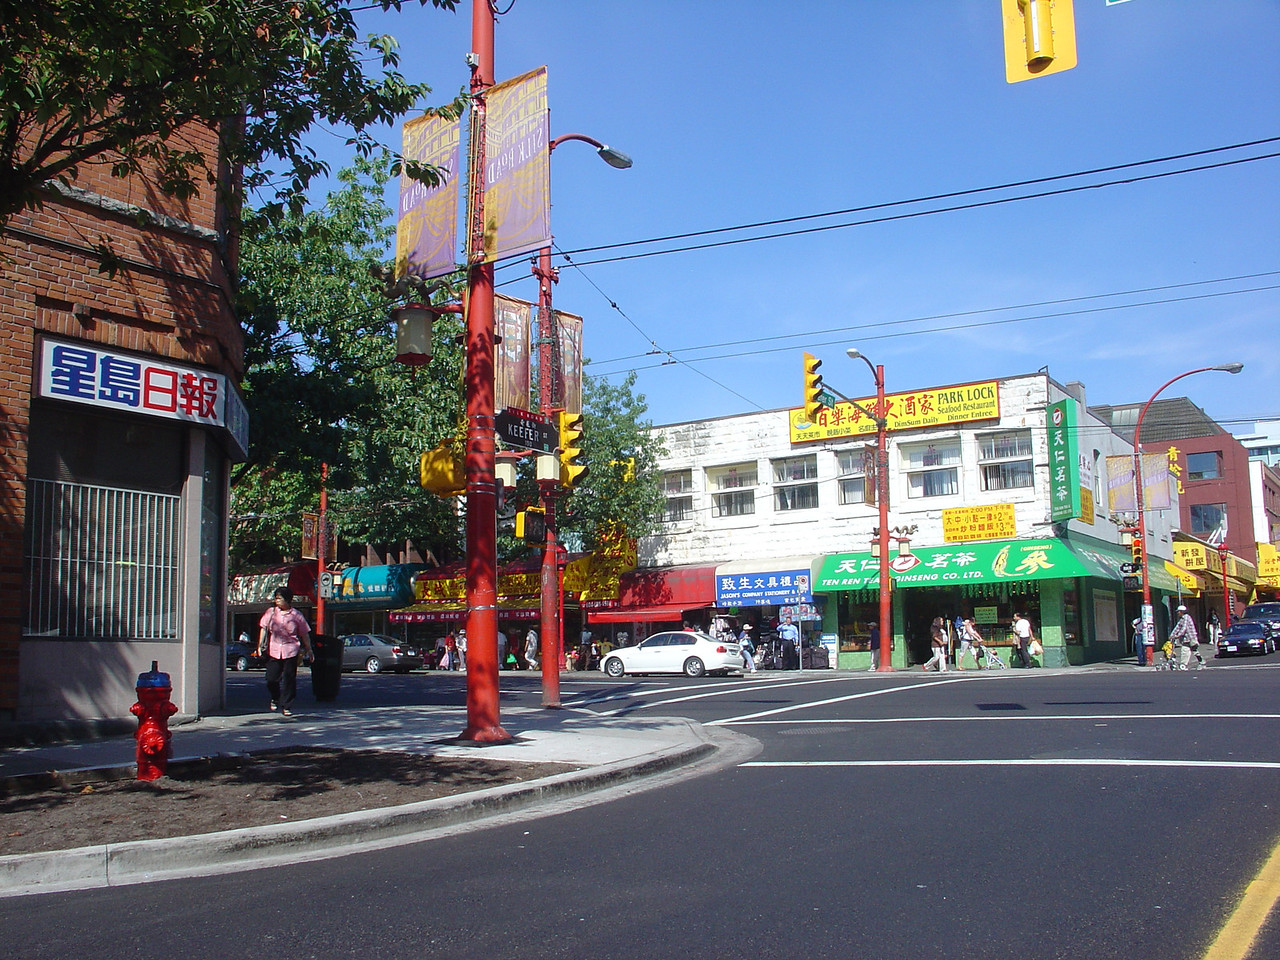 Chinatown Vancouver, British Columbia